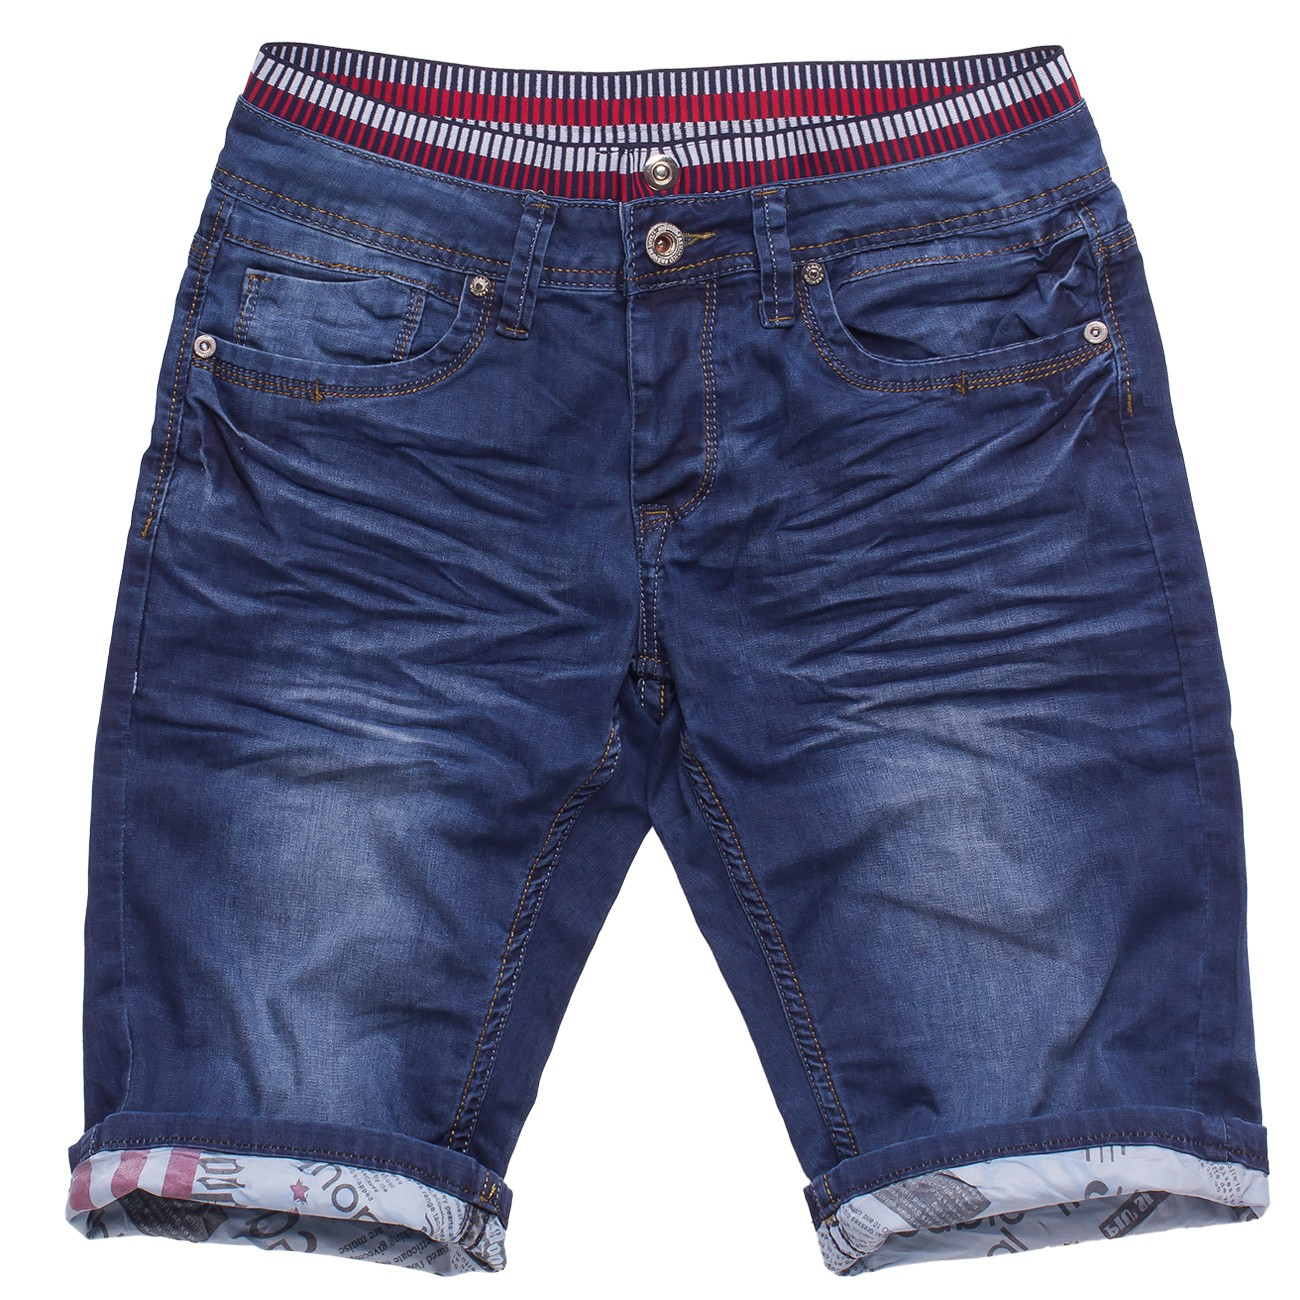 herren joggjeans shorts kurze hose sommer bermuda slim boxer gummibund stretch ebay. Black Bedroom Furniture Sets. Home Design Ideas